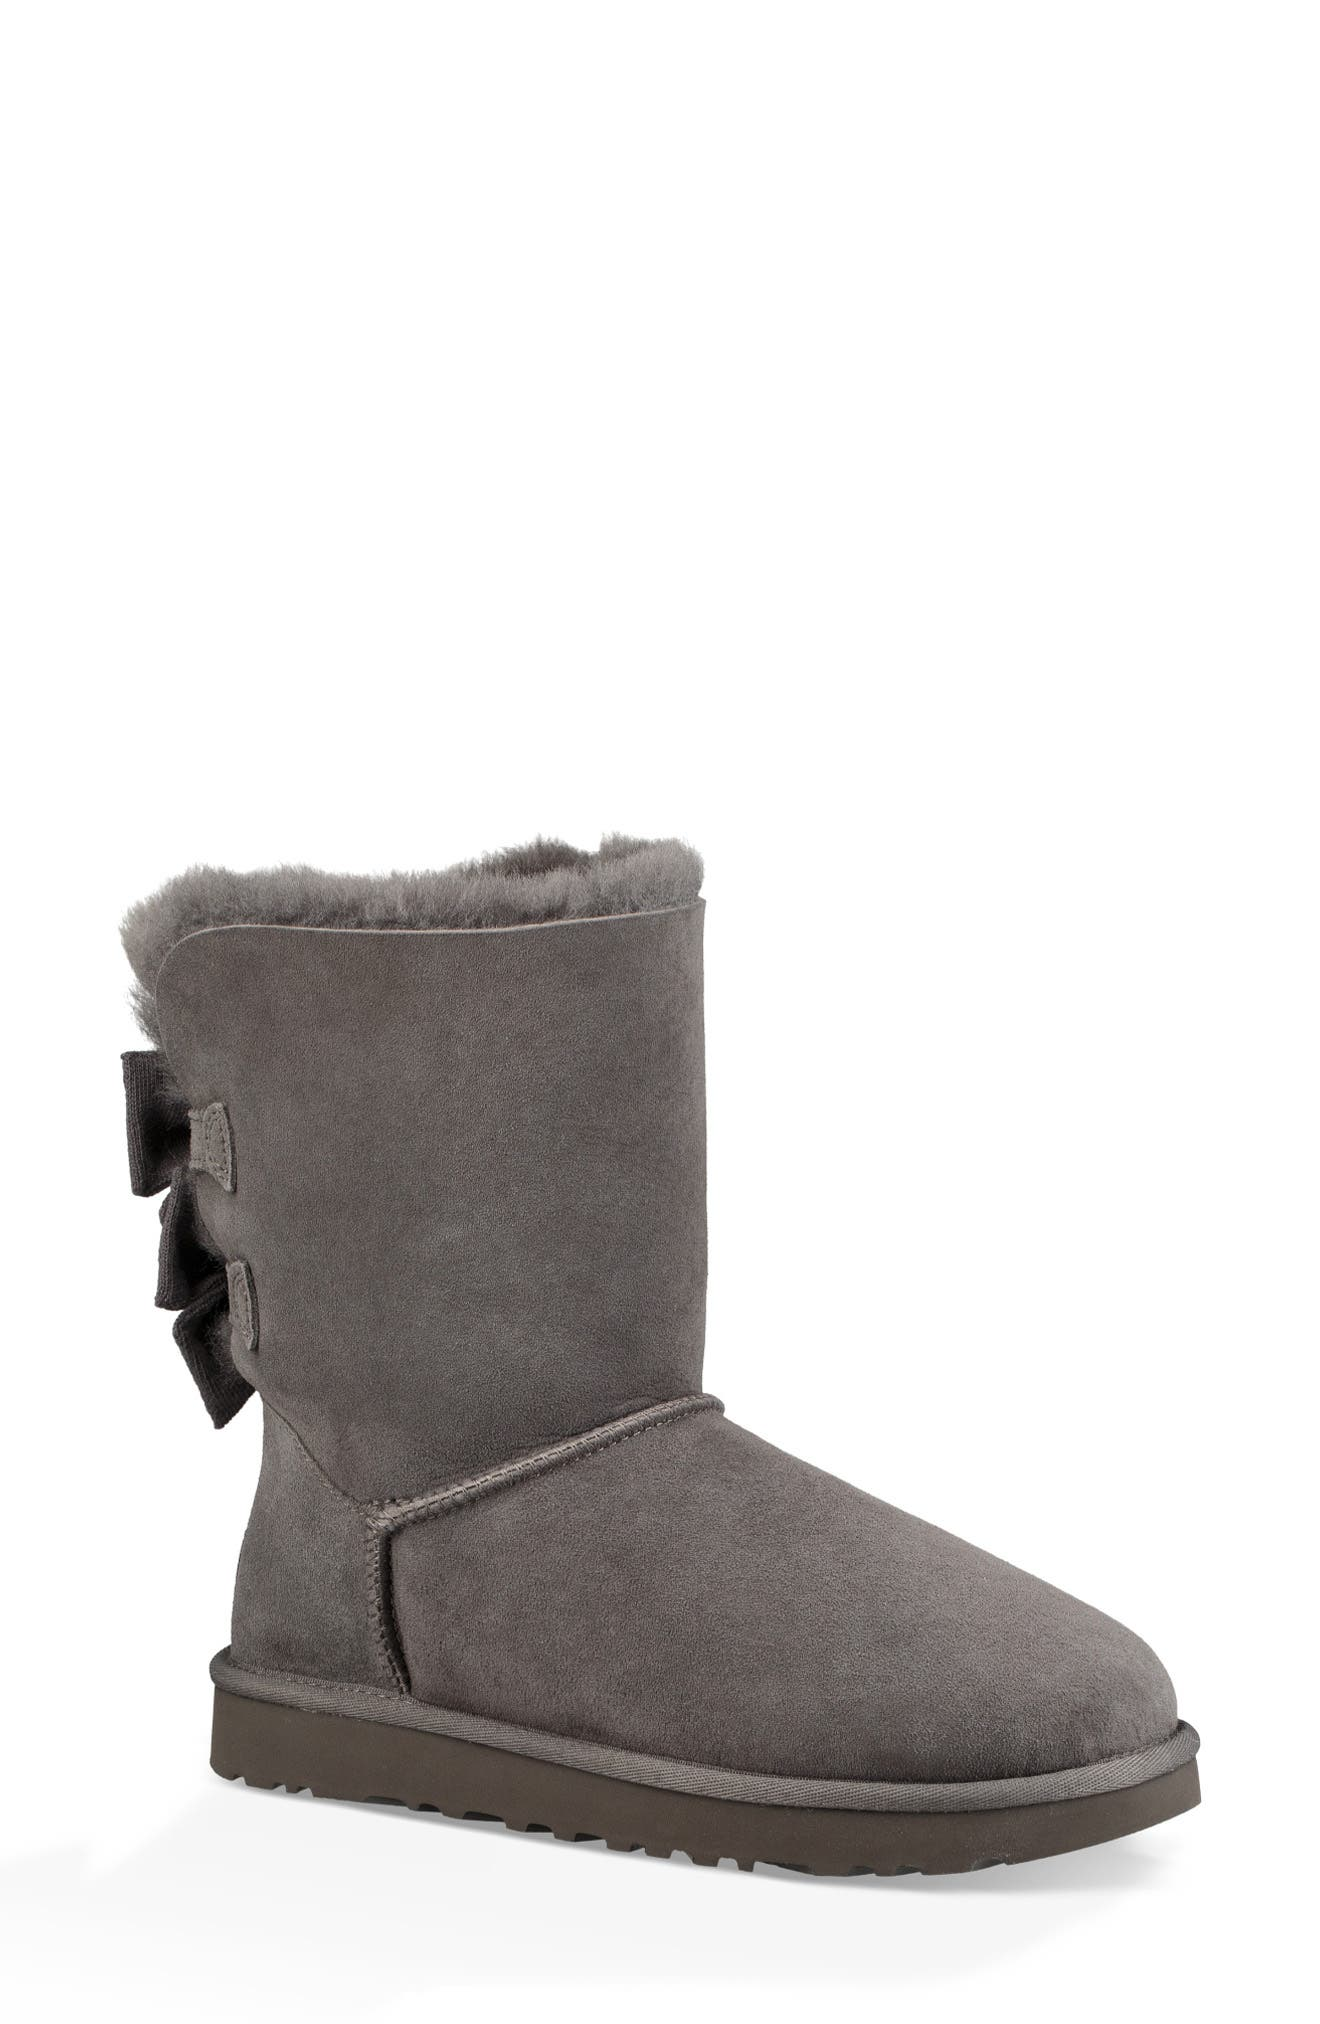 Bailey Bow Genuine Shearling Bootie,                             Main thumbnail 1, color,                             020